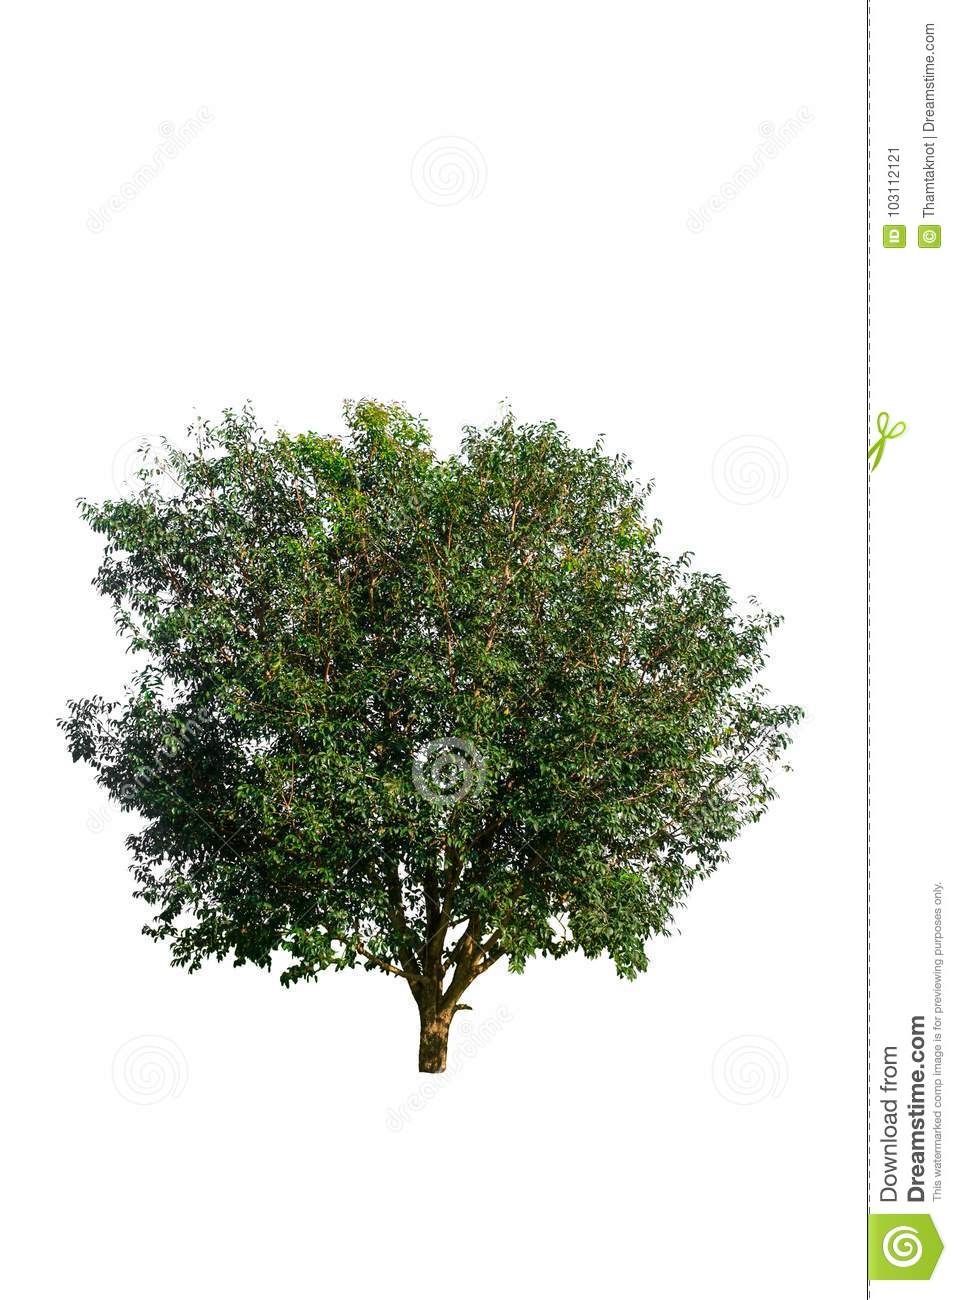 Tree on a white isolated background can be used in a variety of applications on the design.